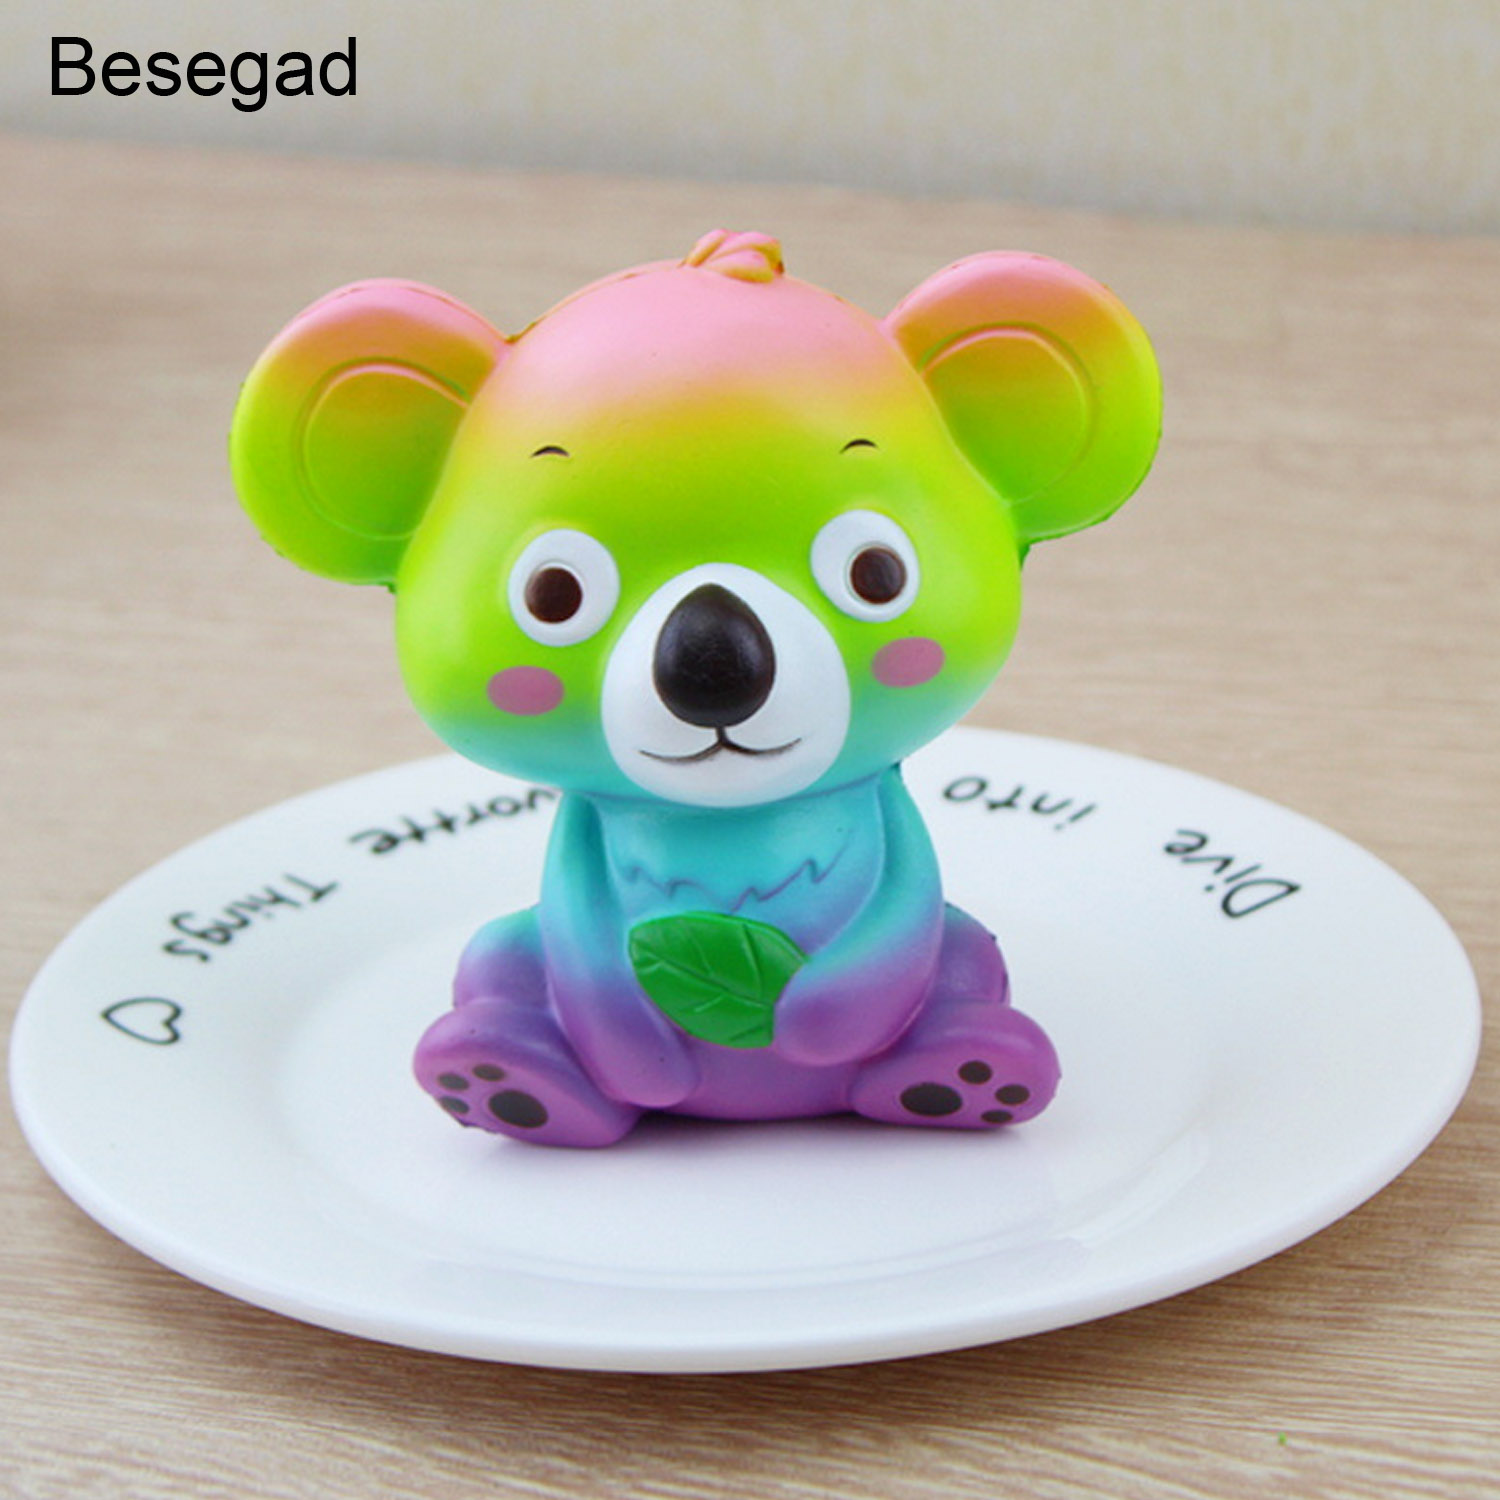 Besegad Soft Jumbo Cute Kawaii Koala Coati Squishy Squshi Slow Rising Squeeze Toy for Children Adults Relieves Stress Anxiety